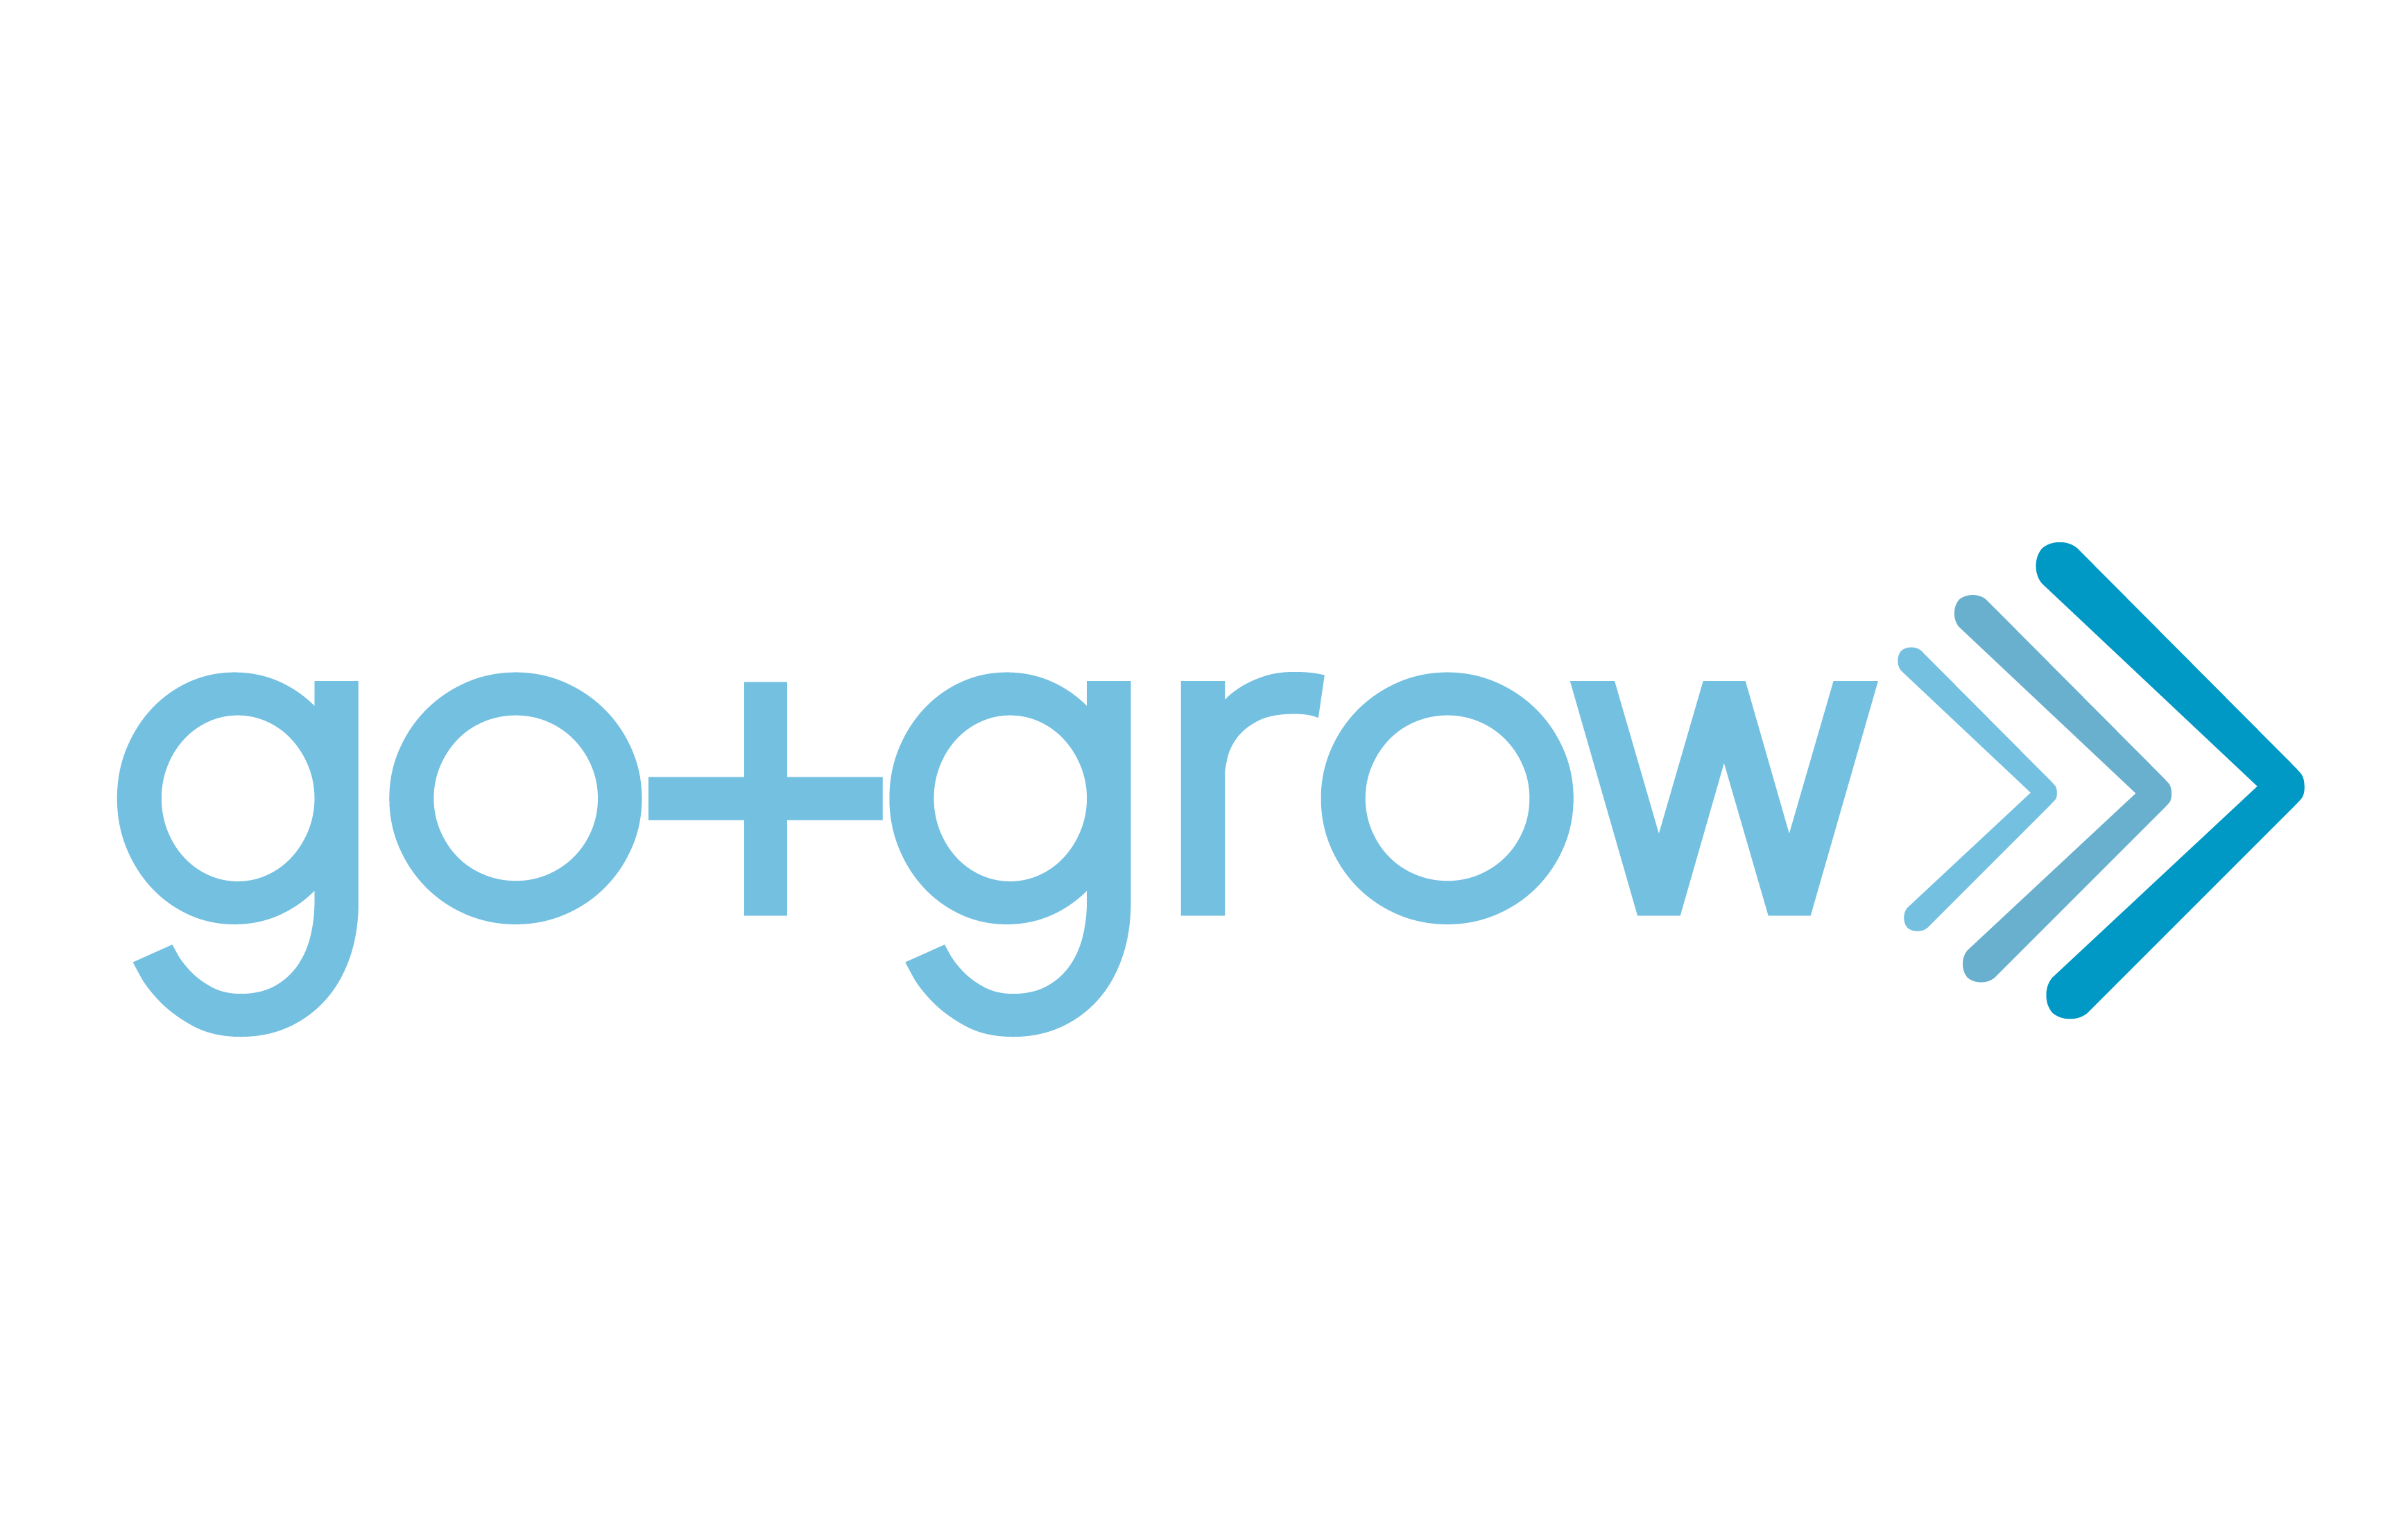 gogrow-CMKY-no-background